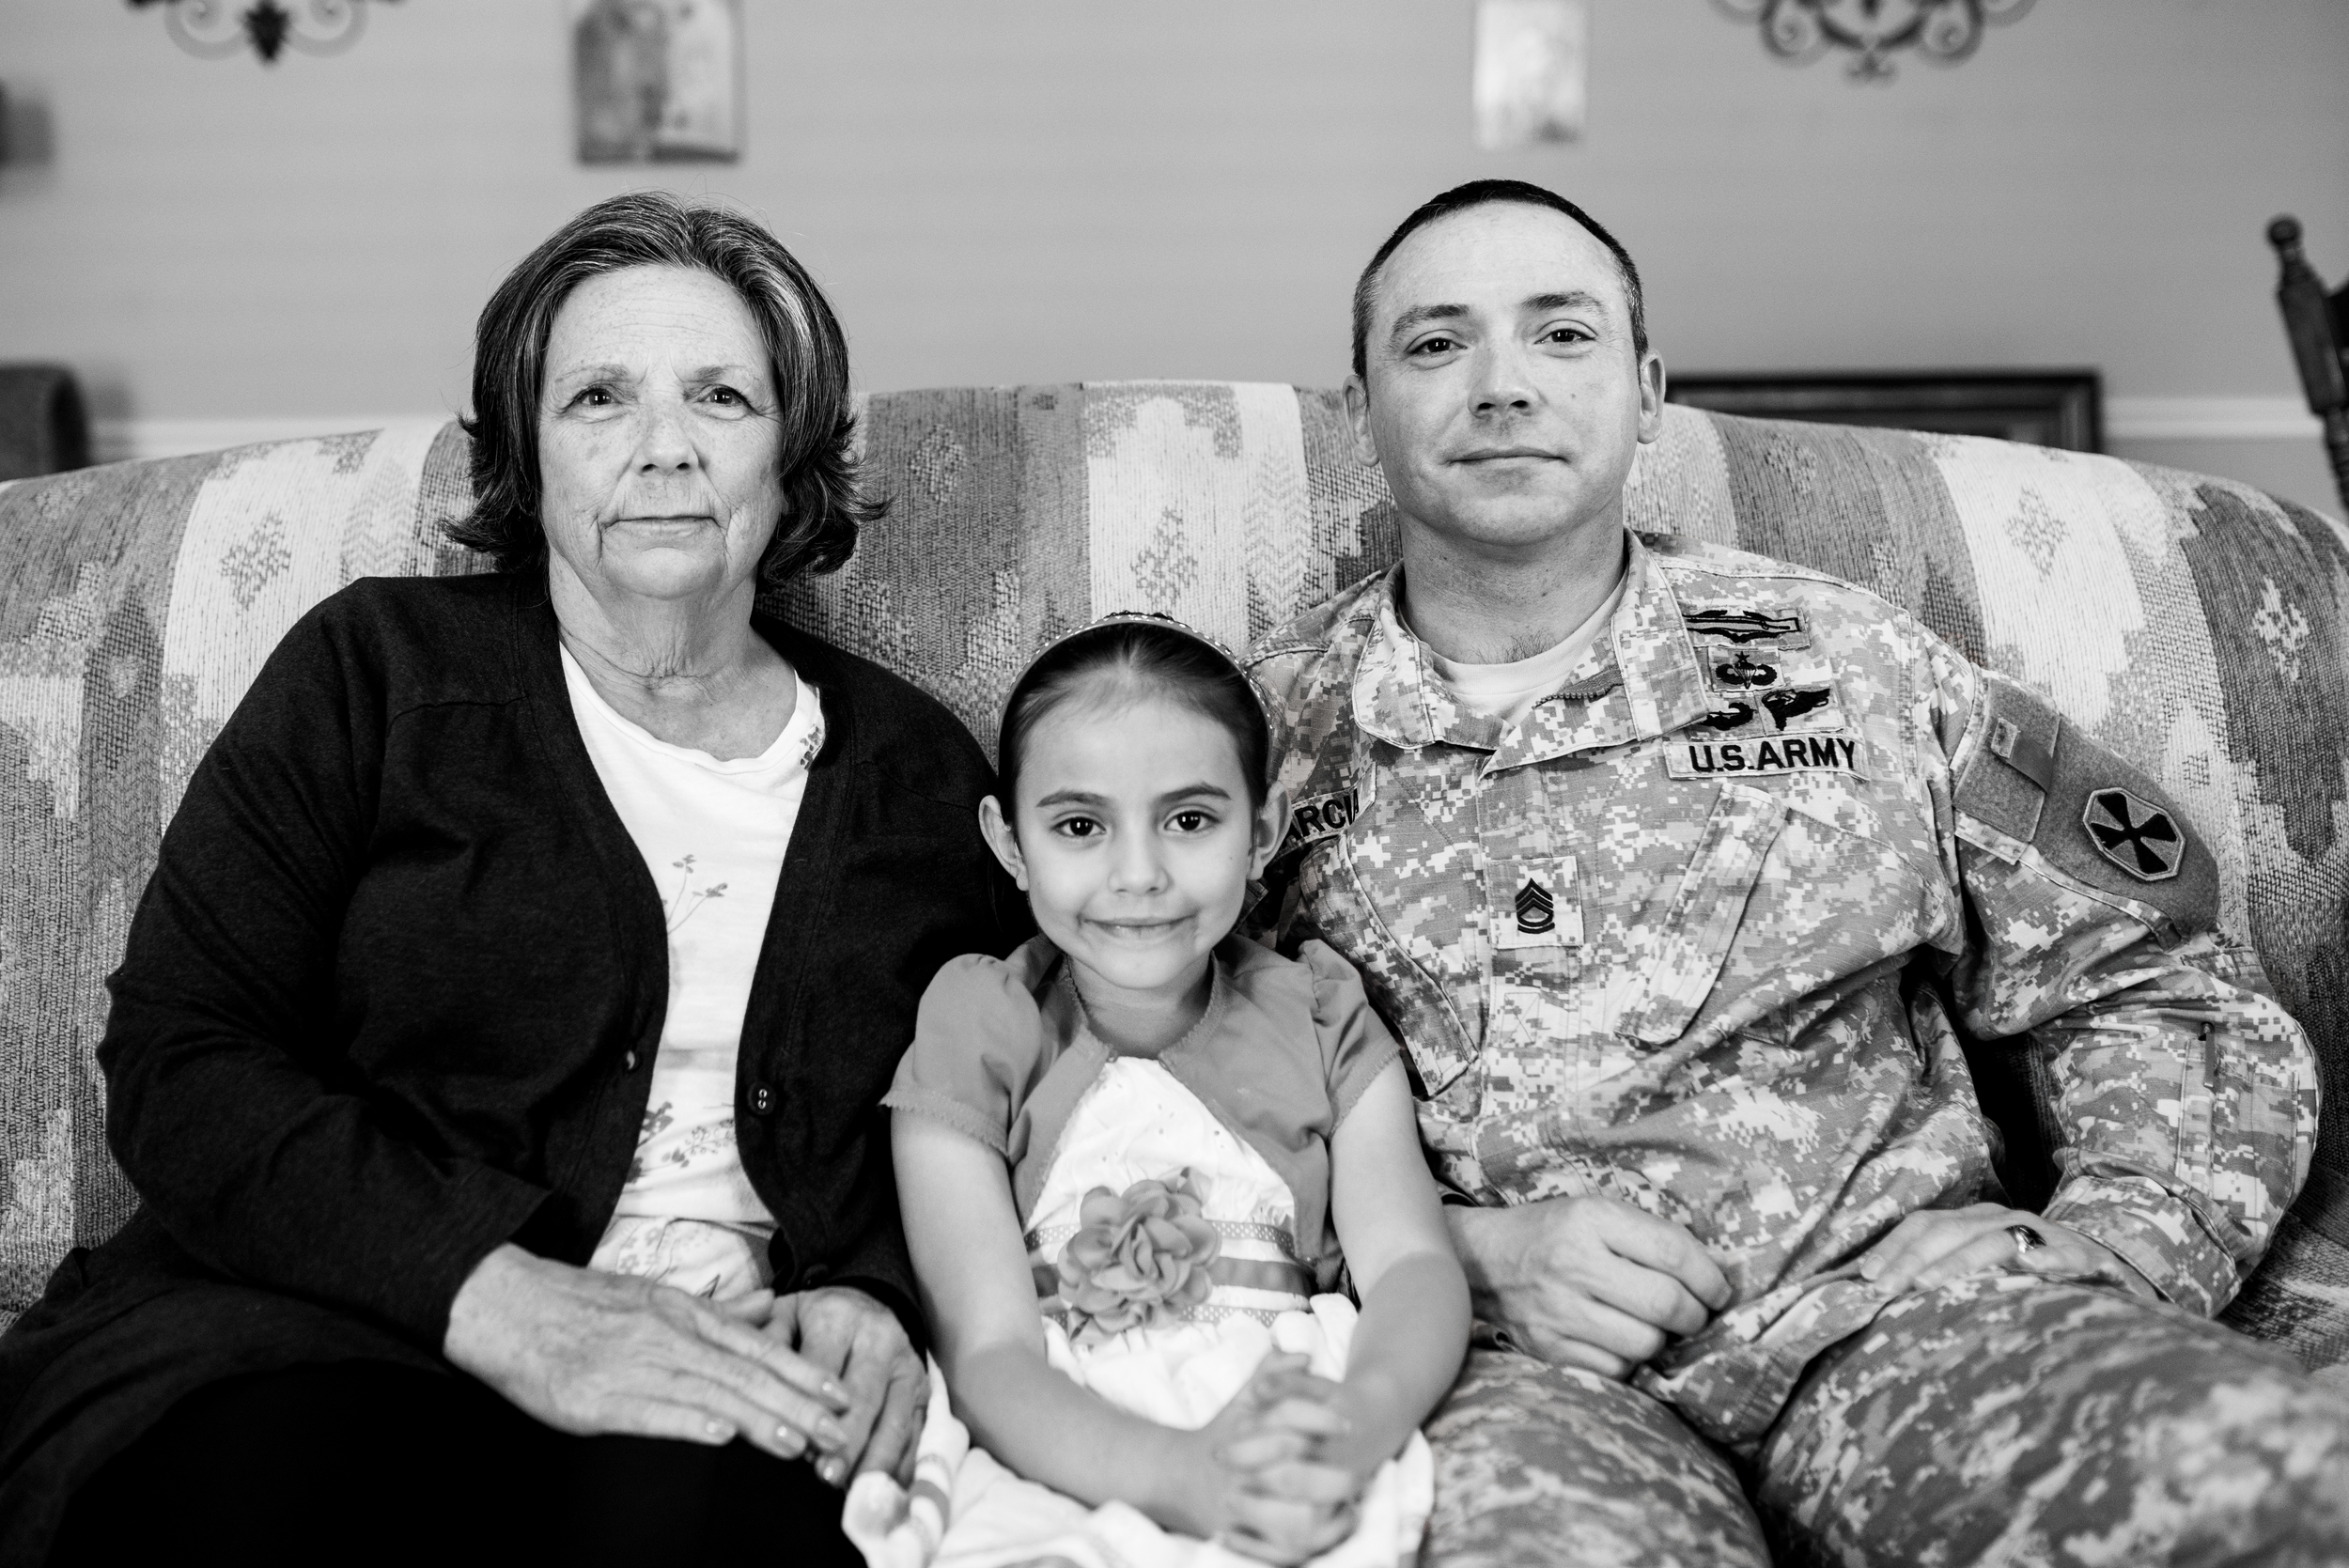 SFC Garcia seated with his mom Brenda (retired Air Force) and daughter Kaylee.